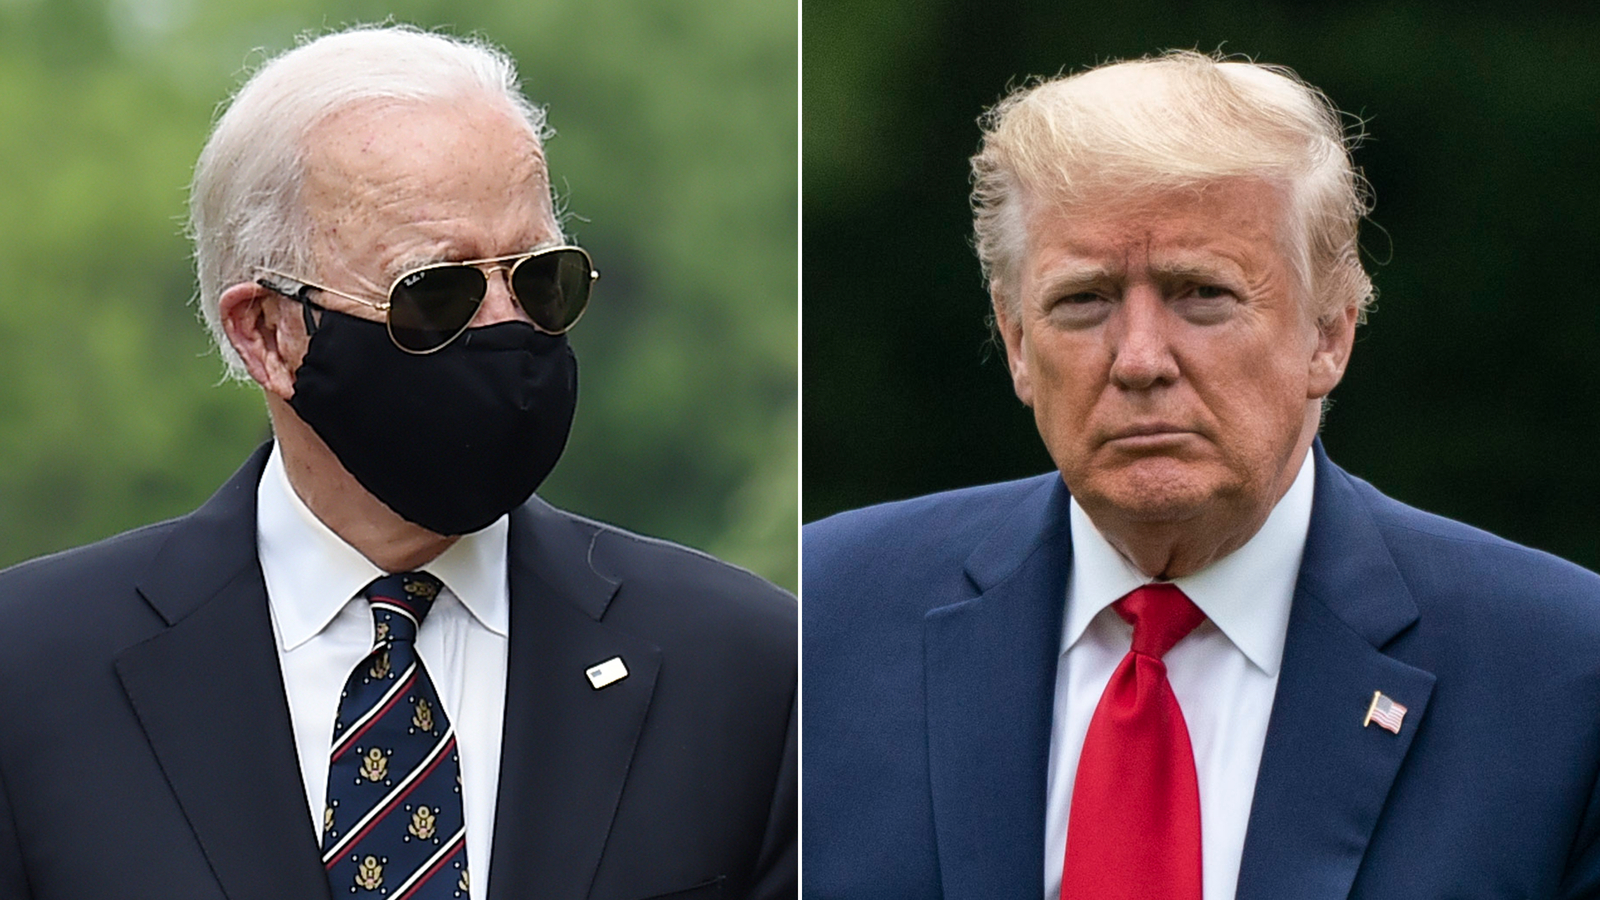 Trump takes his war on masks to new lows